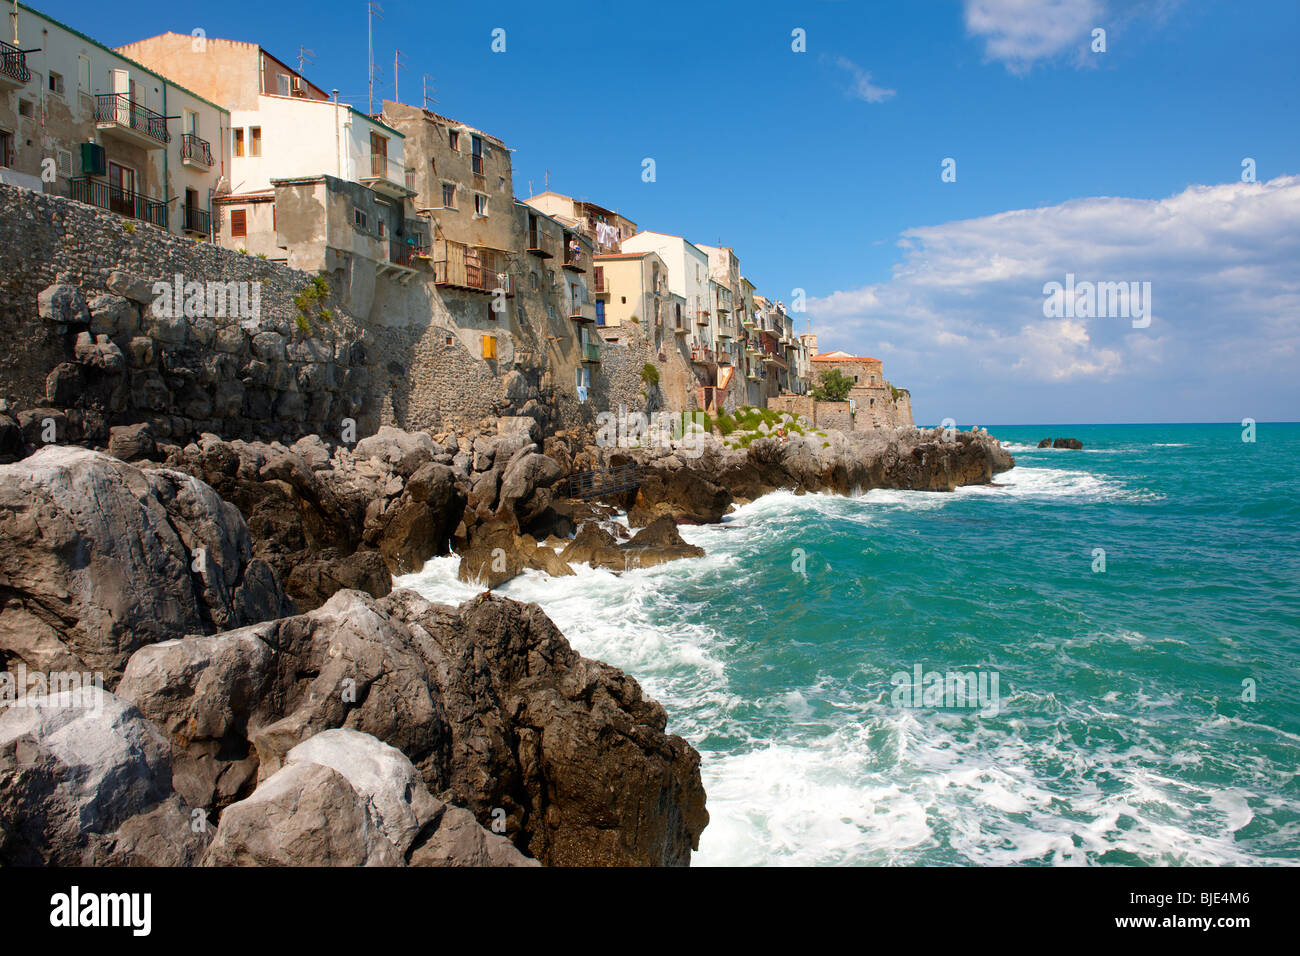 Medieval houses and seafront of old Cefalu [Cefaú] Sicily - Stock Image